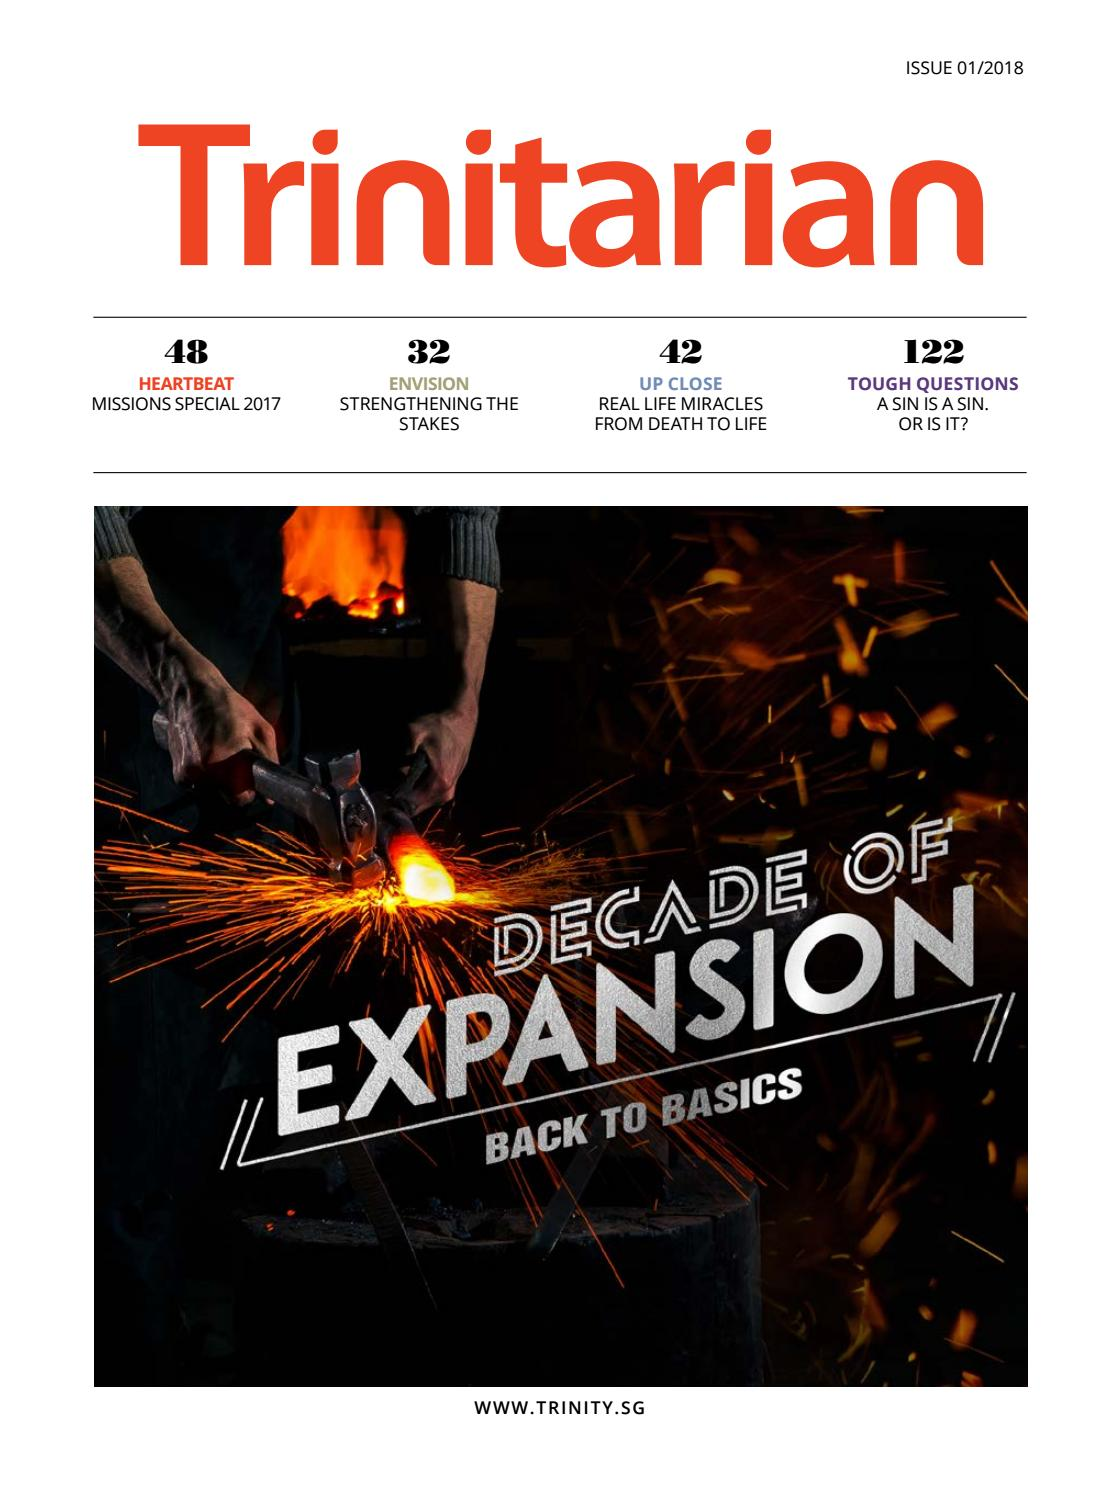 Trinitarian Magazine Issue 1/2018 by Trinity Christian